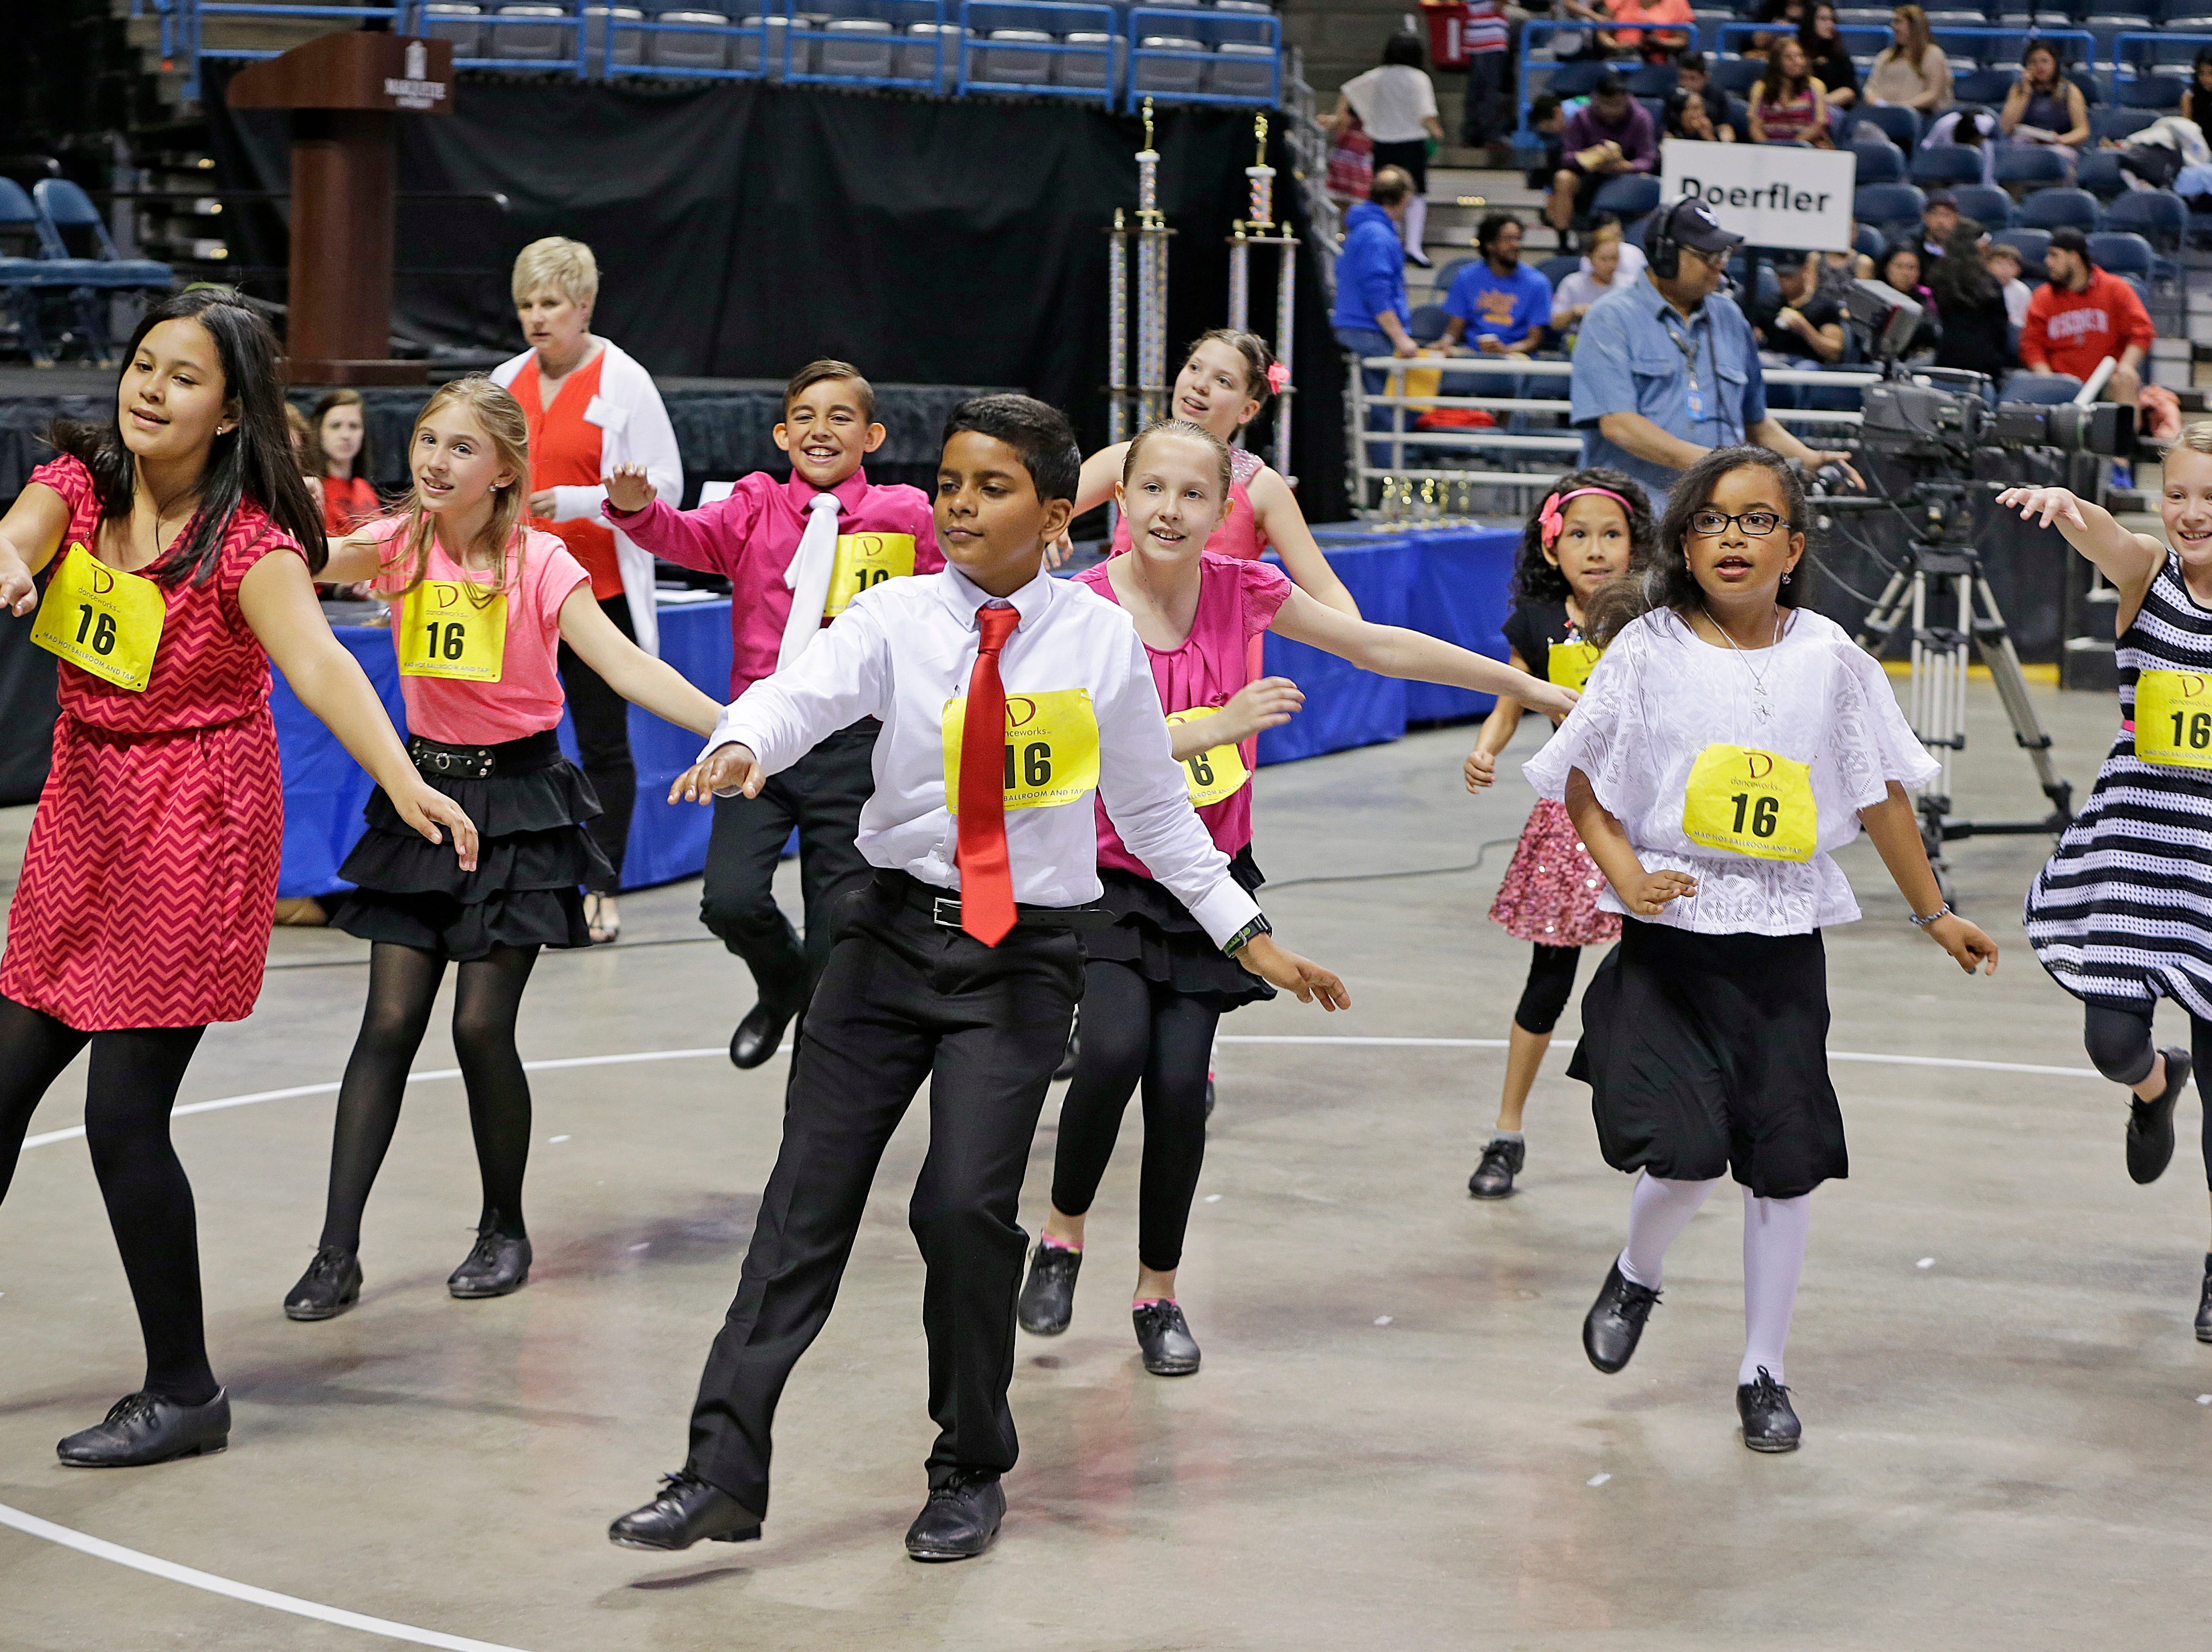 2016: Students from Elm Dale school dance in a Latin style during the annual Mad Hot Ballroom and Tap competition at the BMO Harris Bradley Center.